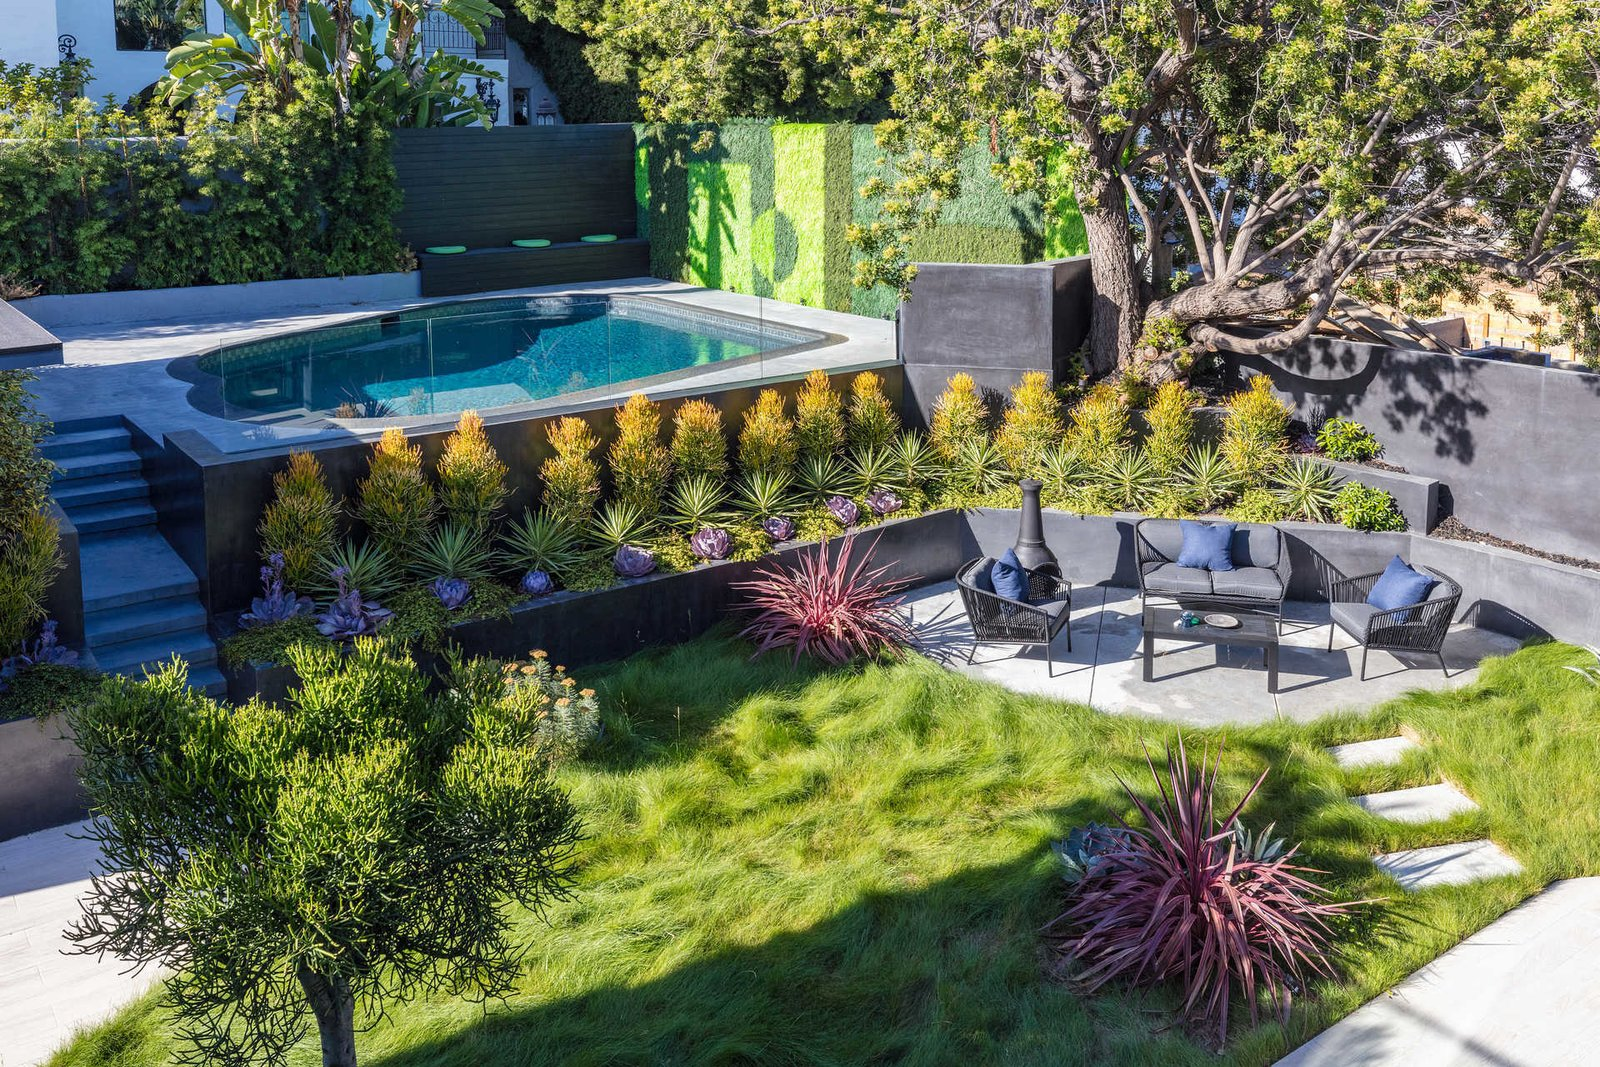 Outdoor, Back Yard, Trees, Large Pools, Tubs, Shower, Grass, Shrubs, Gardens, Raised Planters, Large Patio, Porch, Deck, and Walkways  Italian Modernist Home